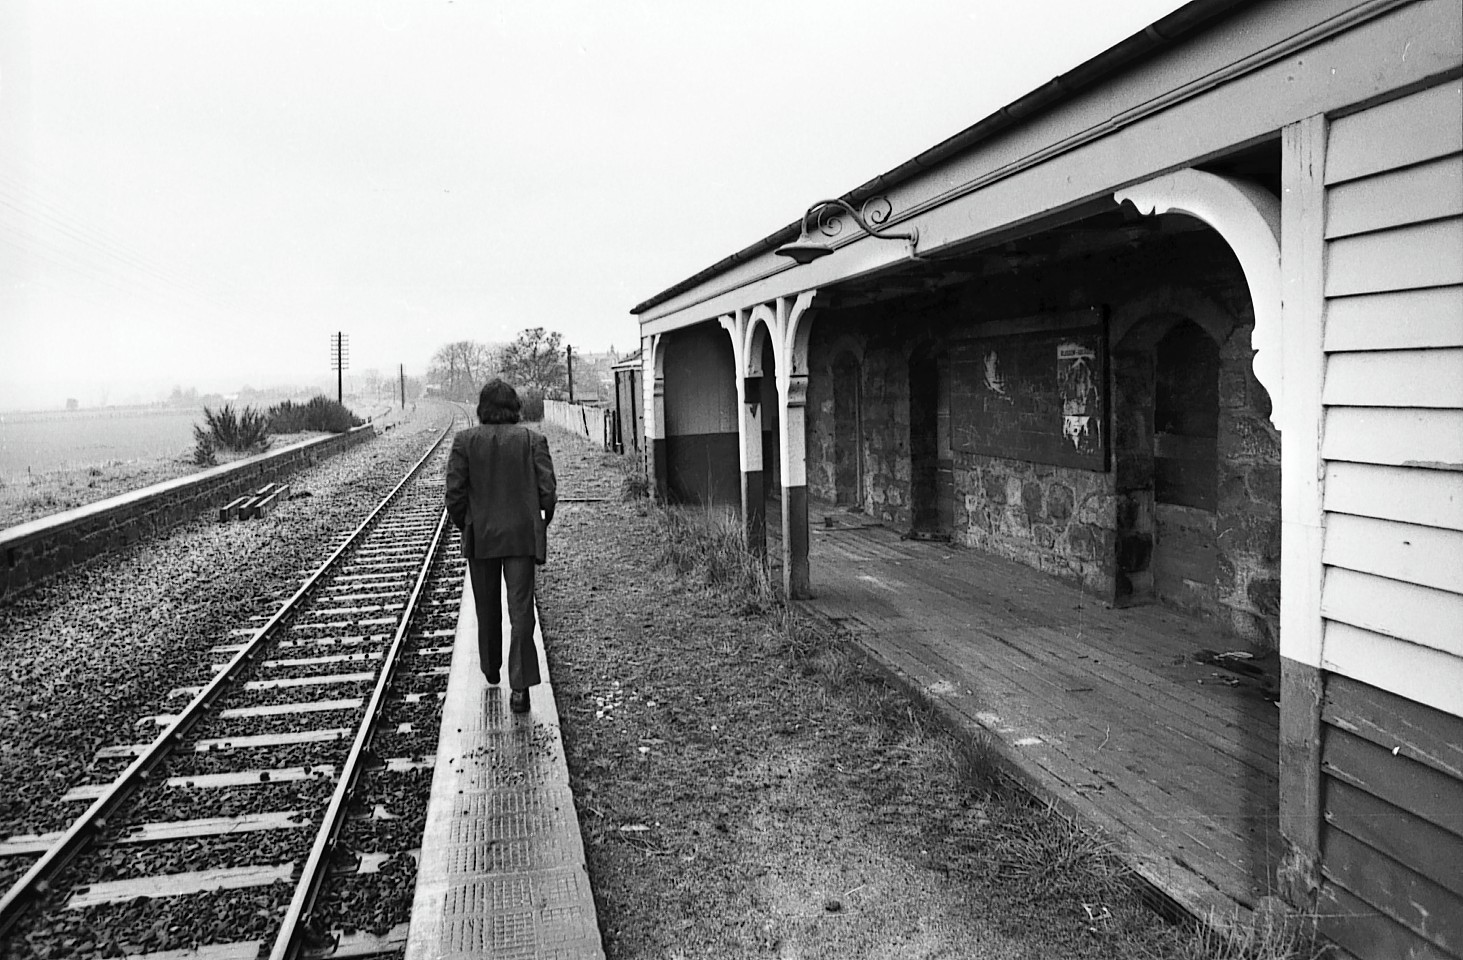 The former Kintore Railway Station in days gone by